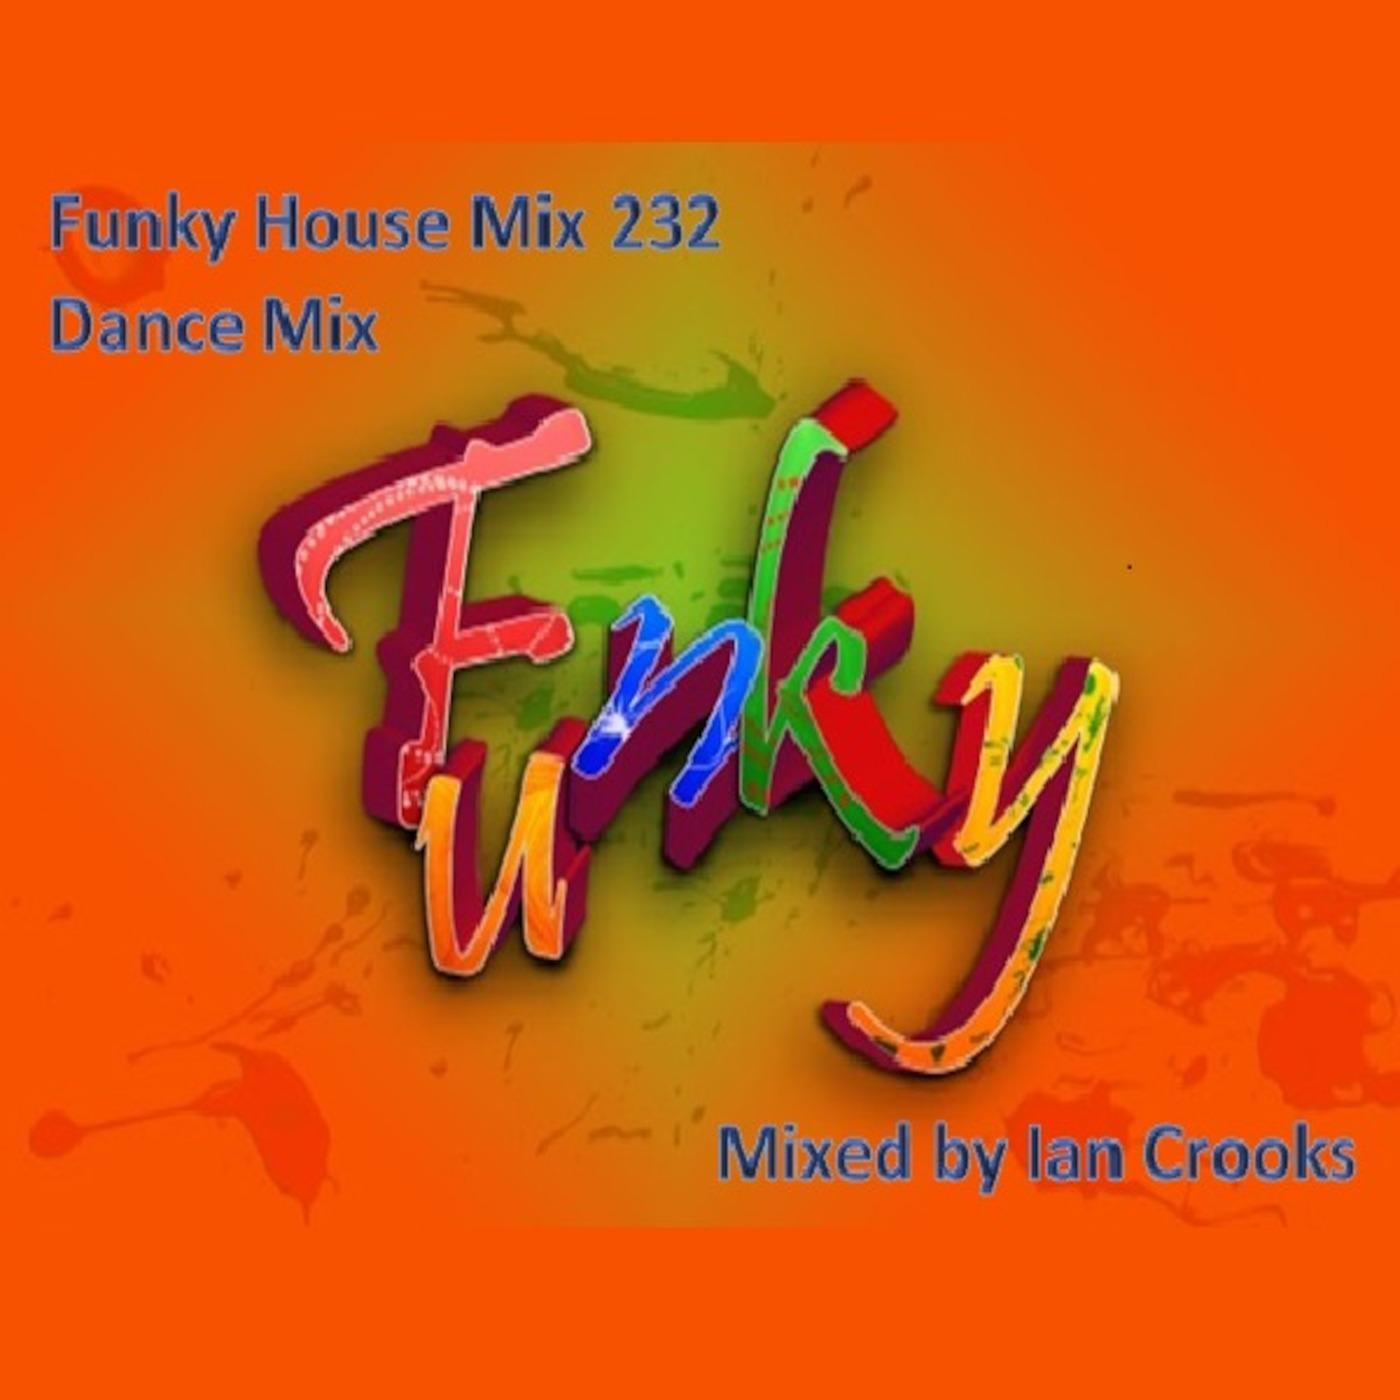 Funky House Mix 232